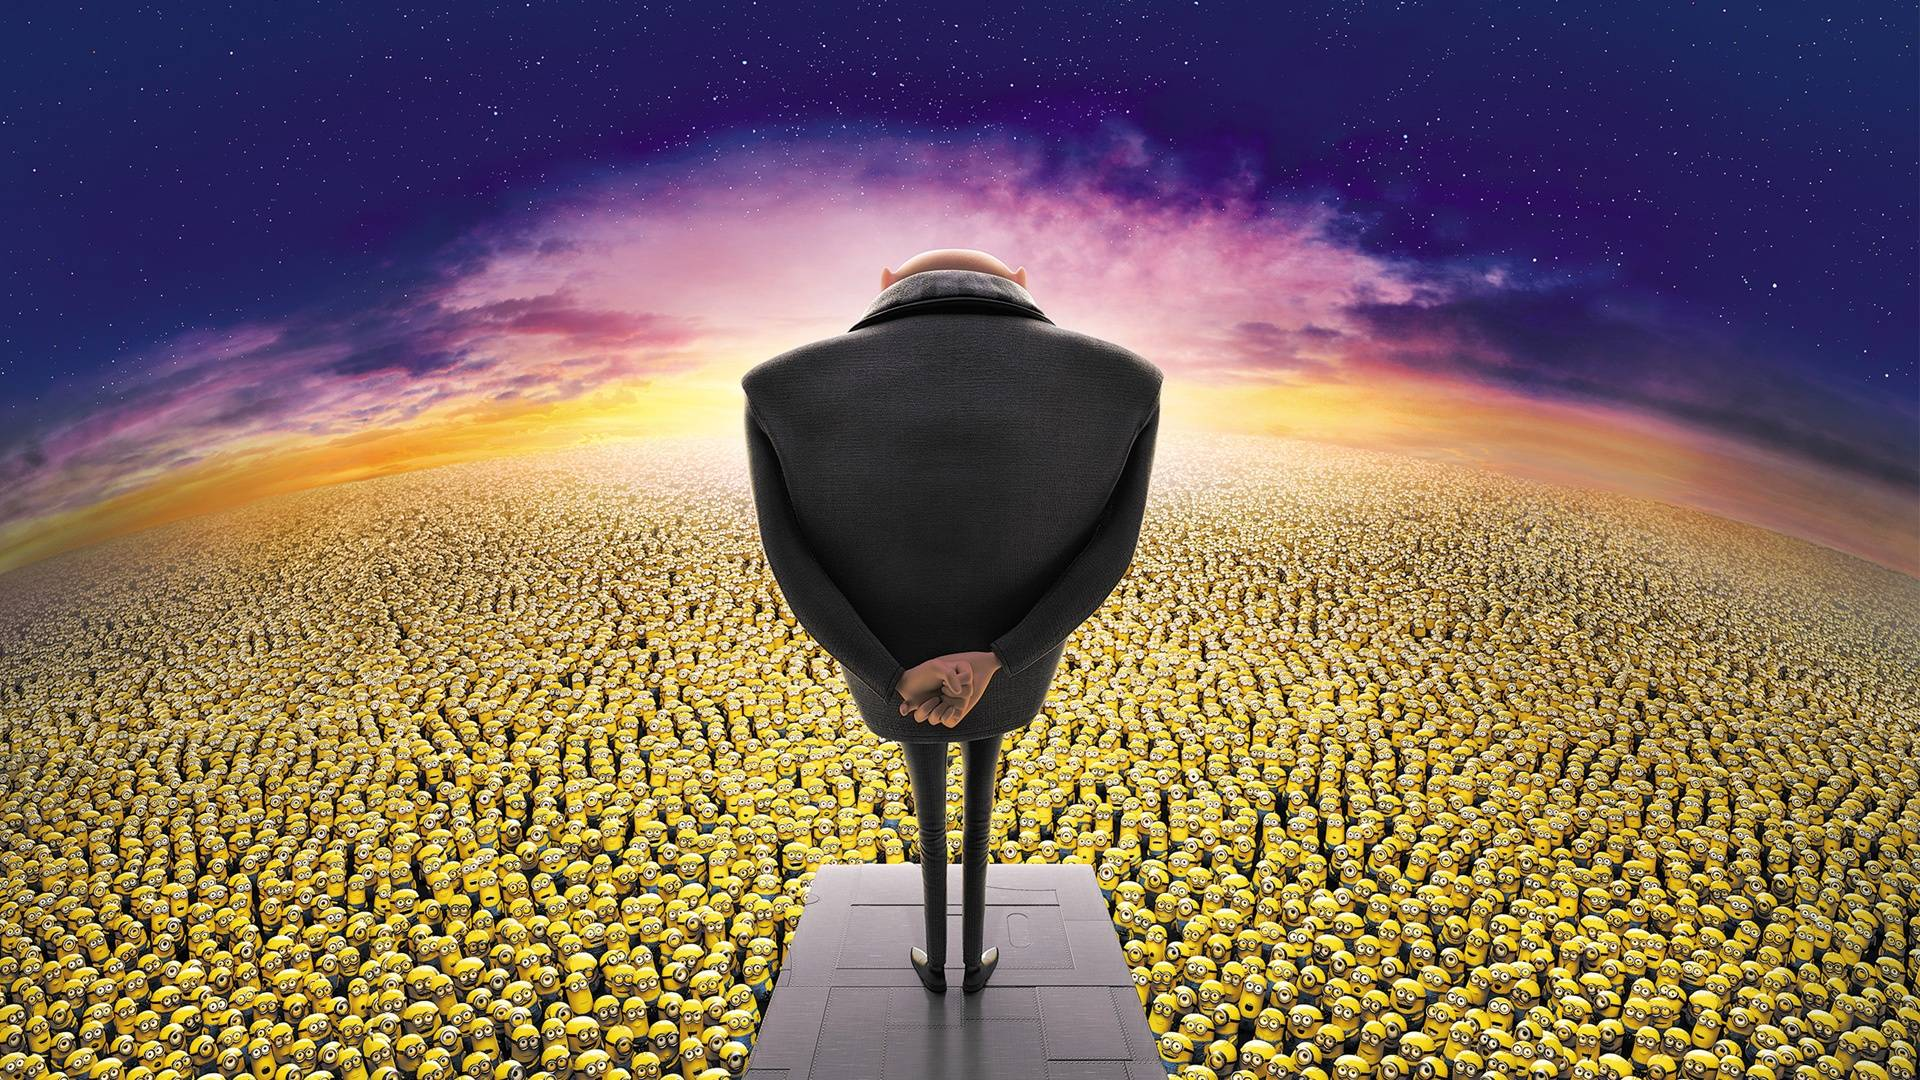 Despicable me hd wallpapers wallpaper cave despicable me 2 movie wallpapers hd wallpapers voltagebd Images